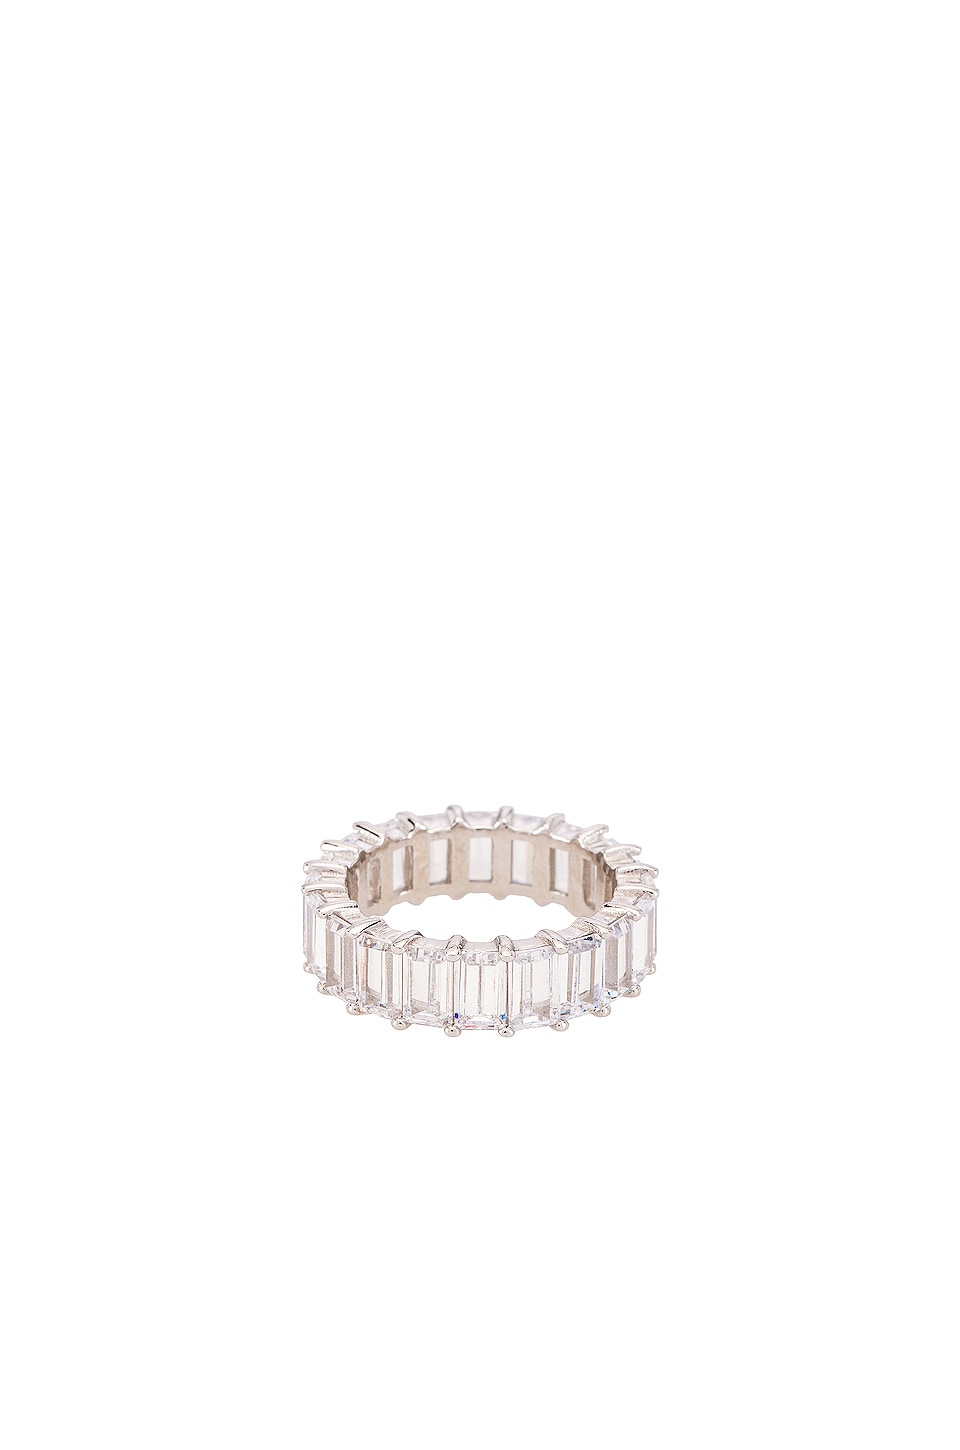 The M Jewelers NY The Emerald Cut Pave Ring in Silver